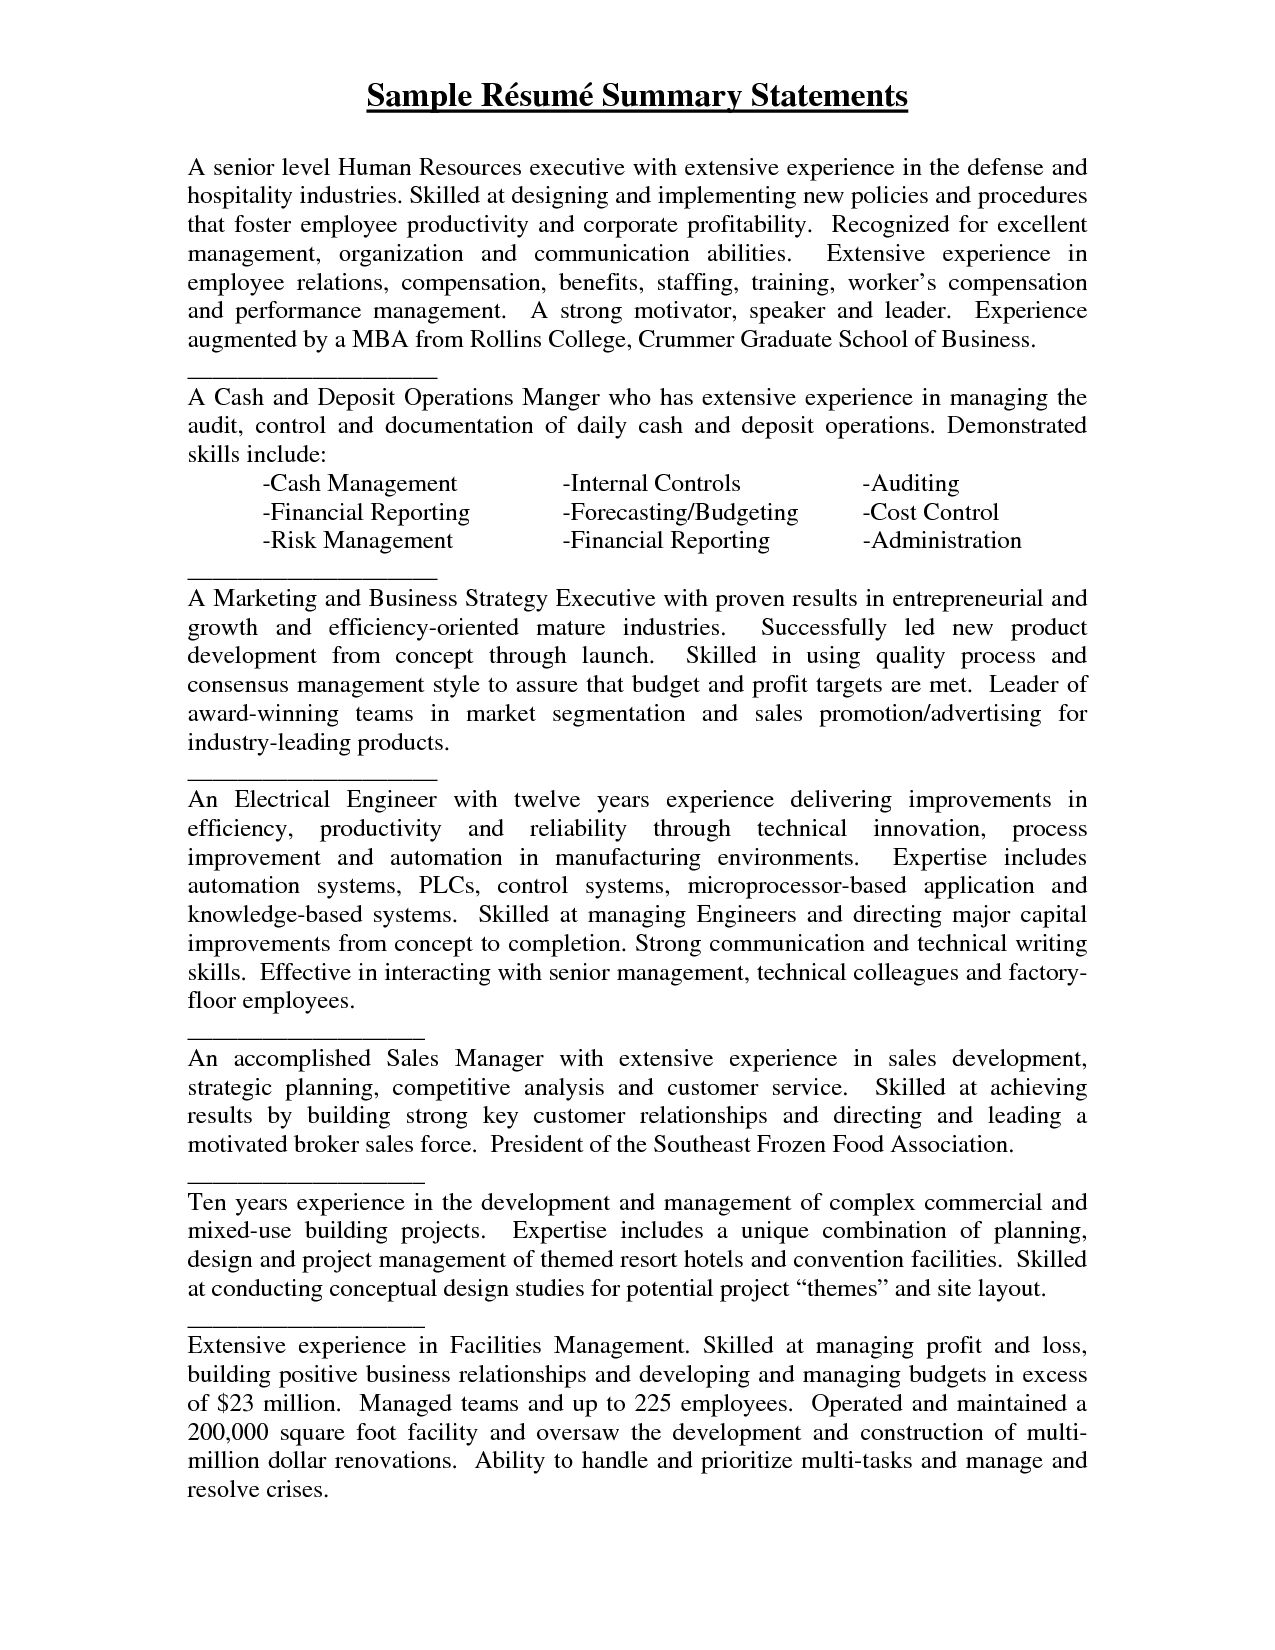 sample resume summary statements statement examples professional writing